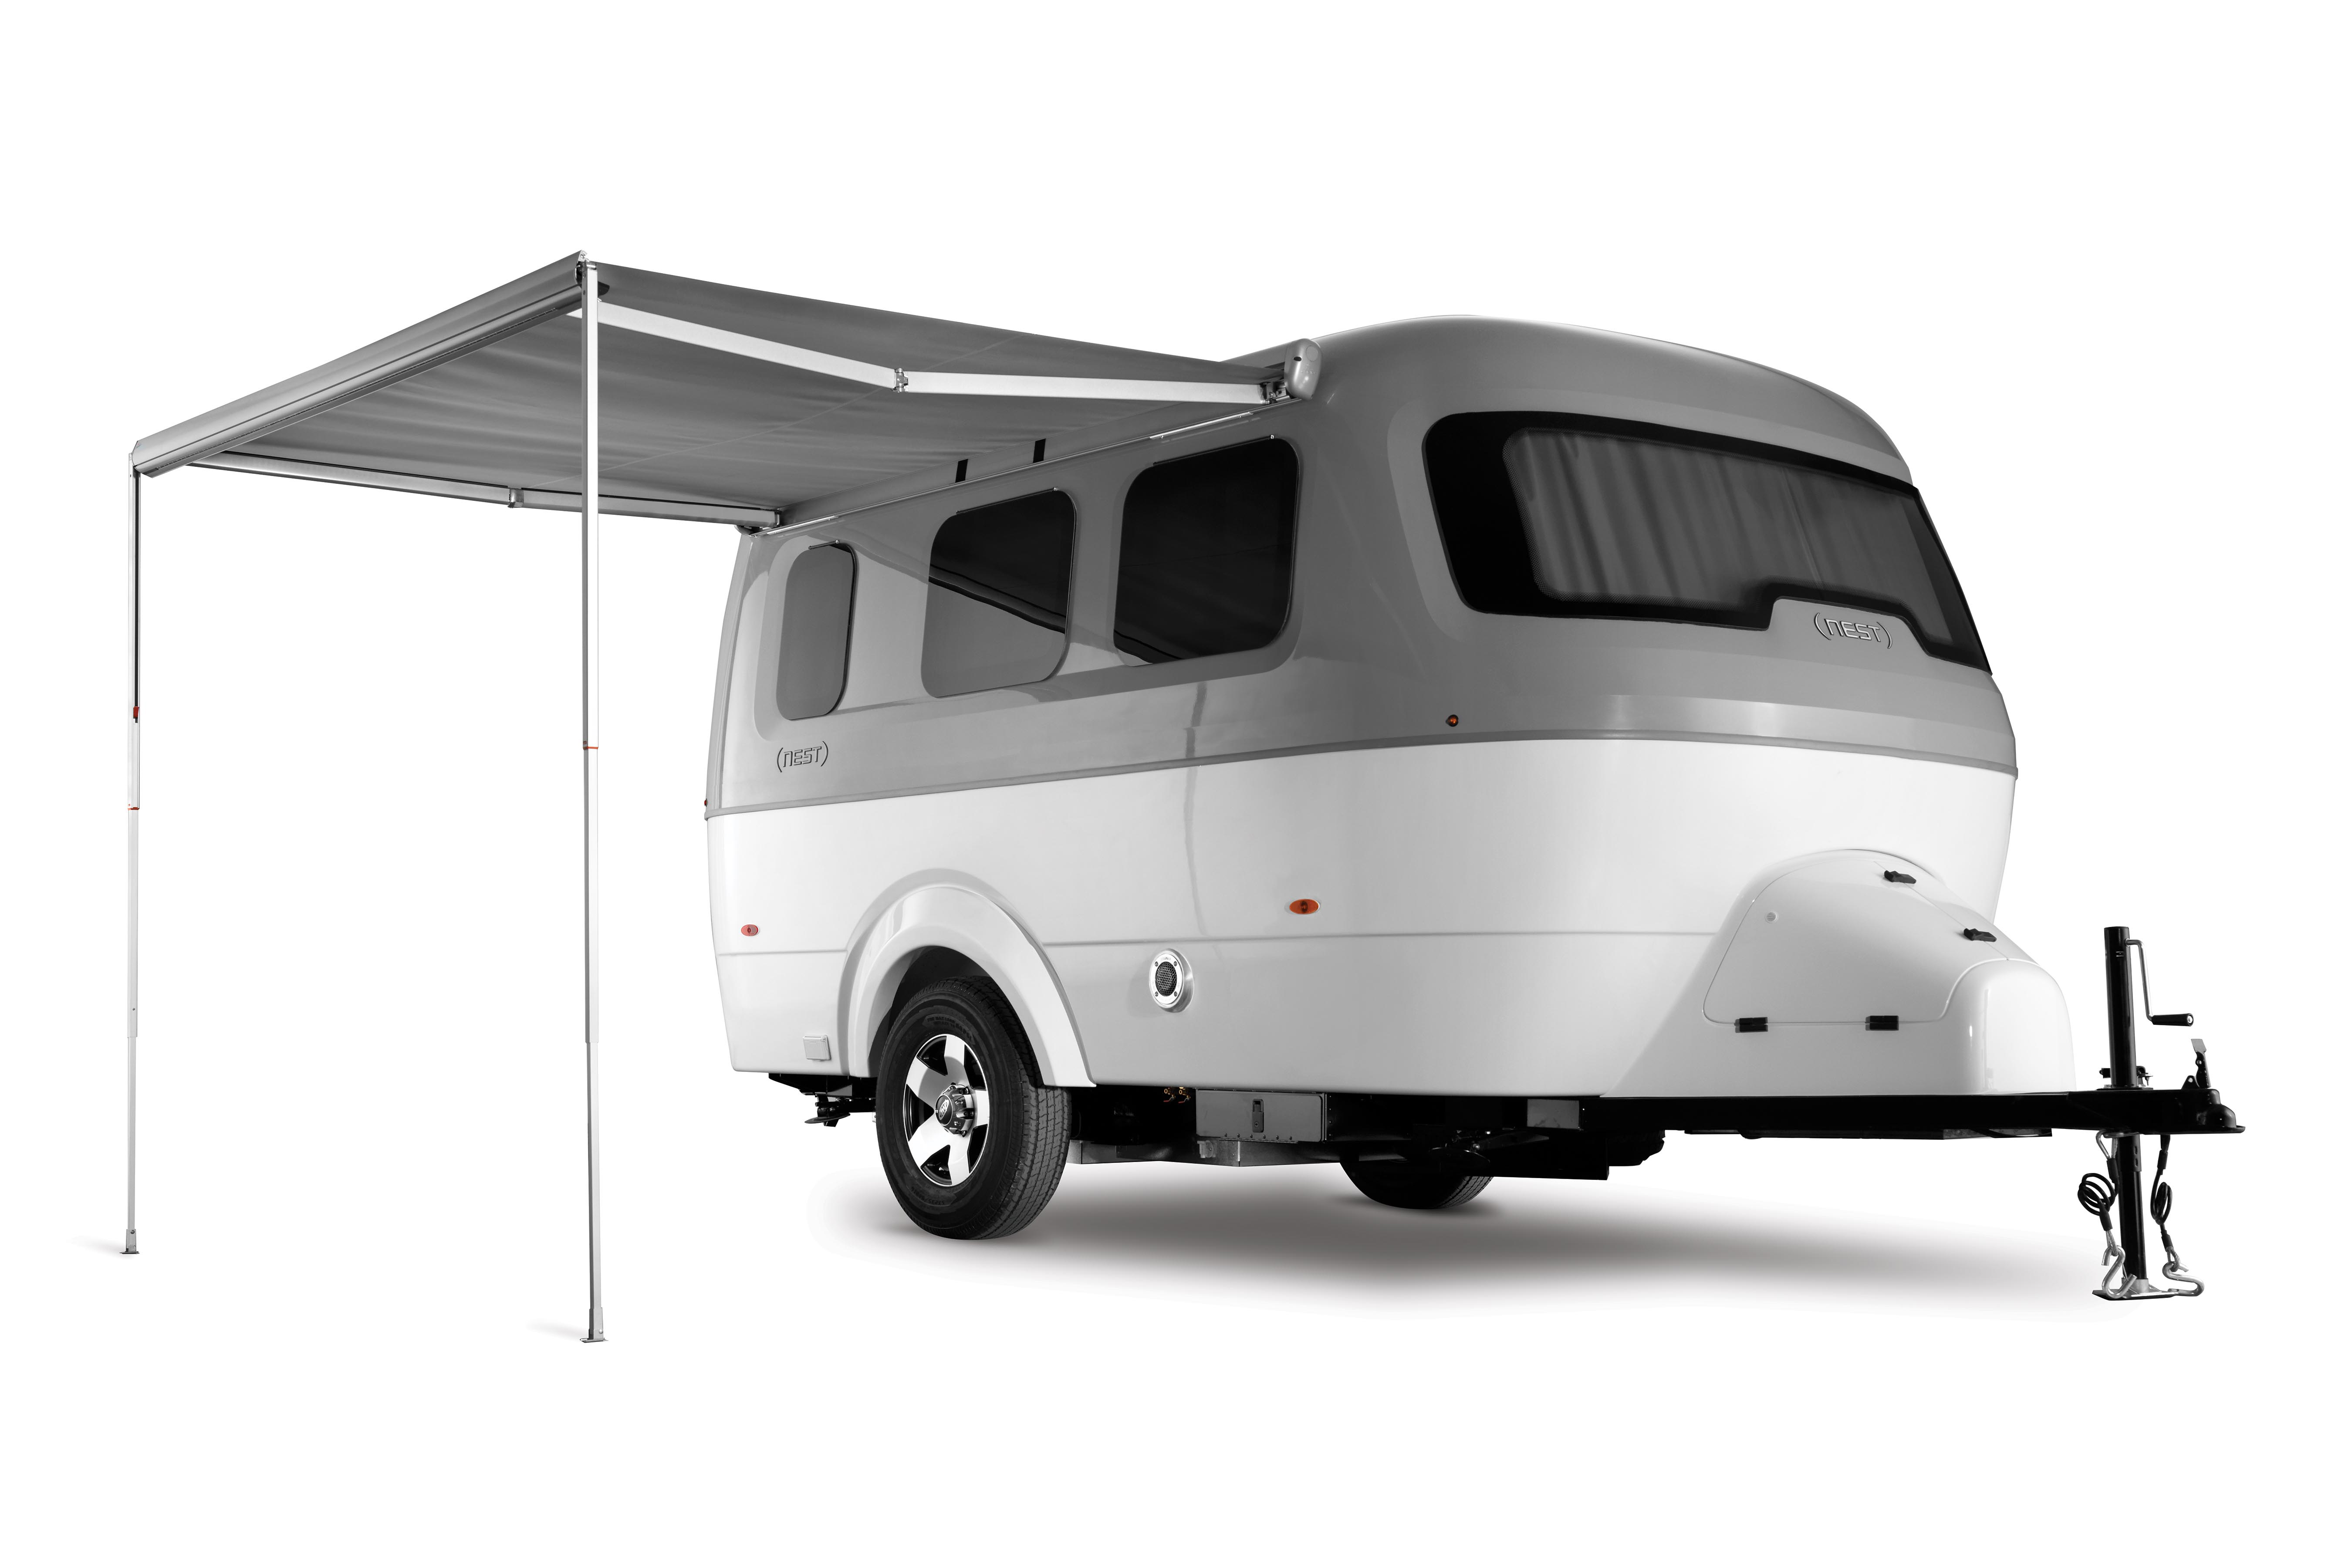 Airstream Nest Exterior with Awning